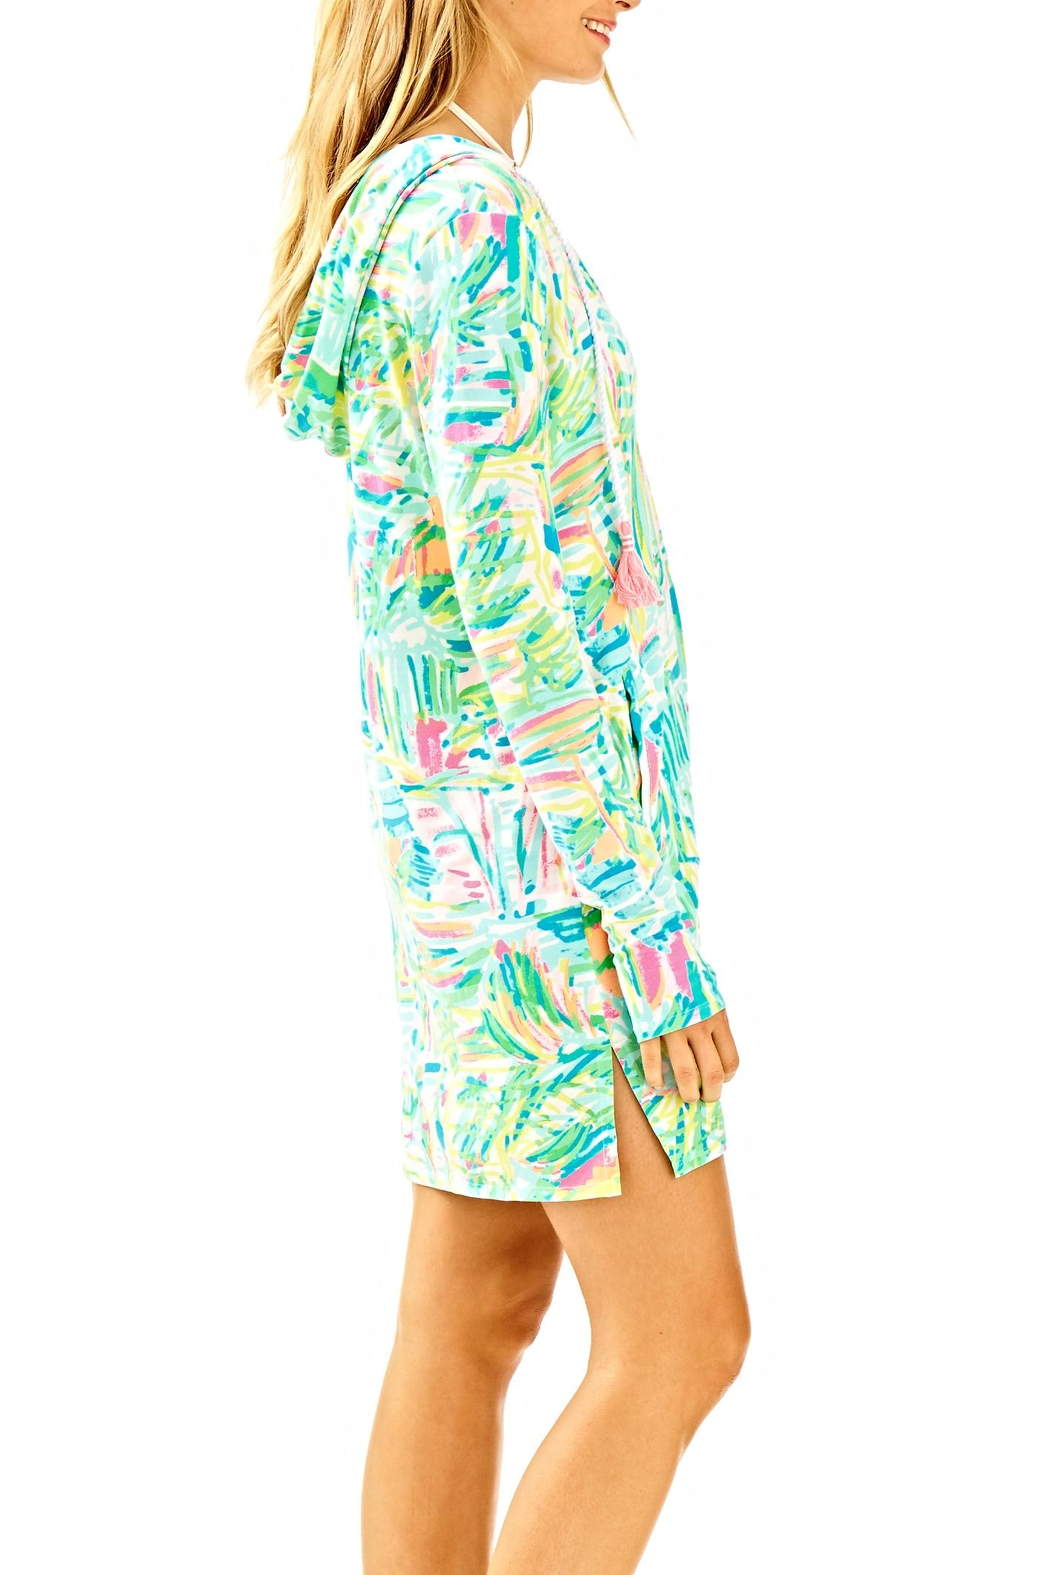 56bcf9c937 Lilly Pulitzer Rylie Dress from Sandestin Golf and Beach Resort by ...